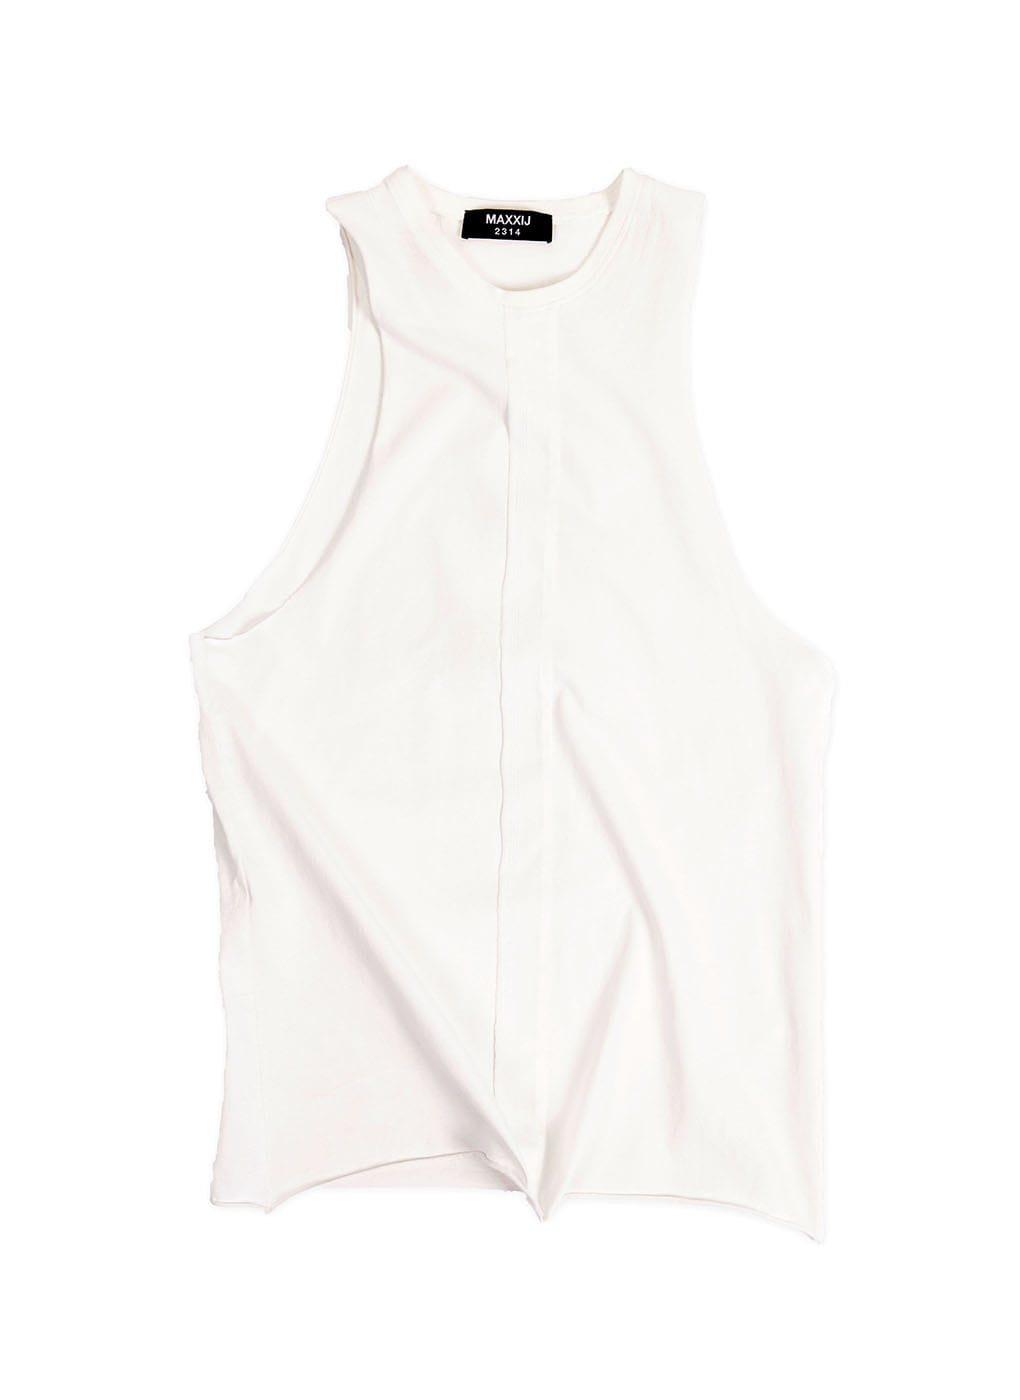 White Cutout Top Stitched Jersey Sleeveless T-shirt